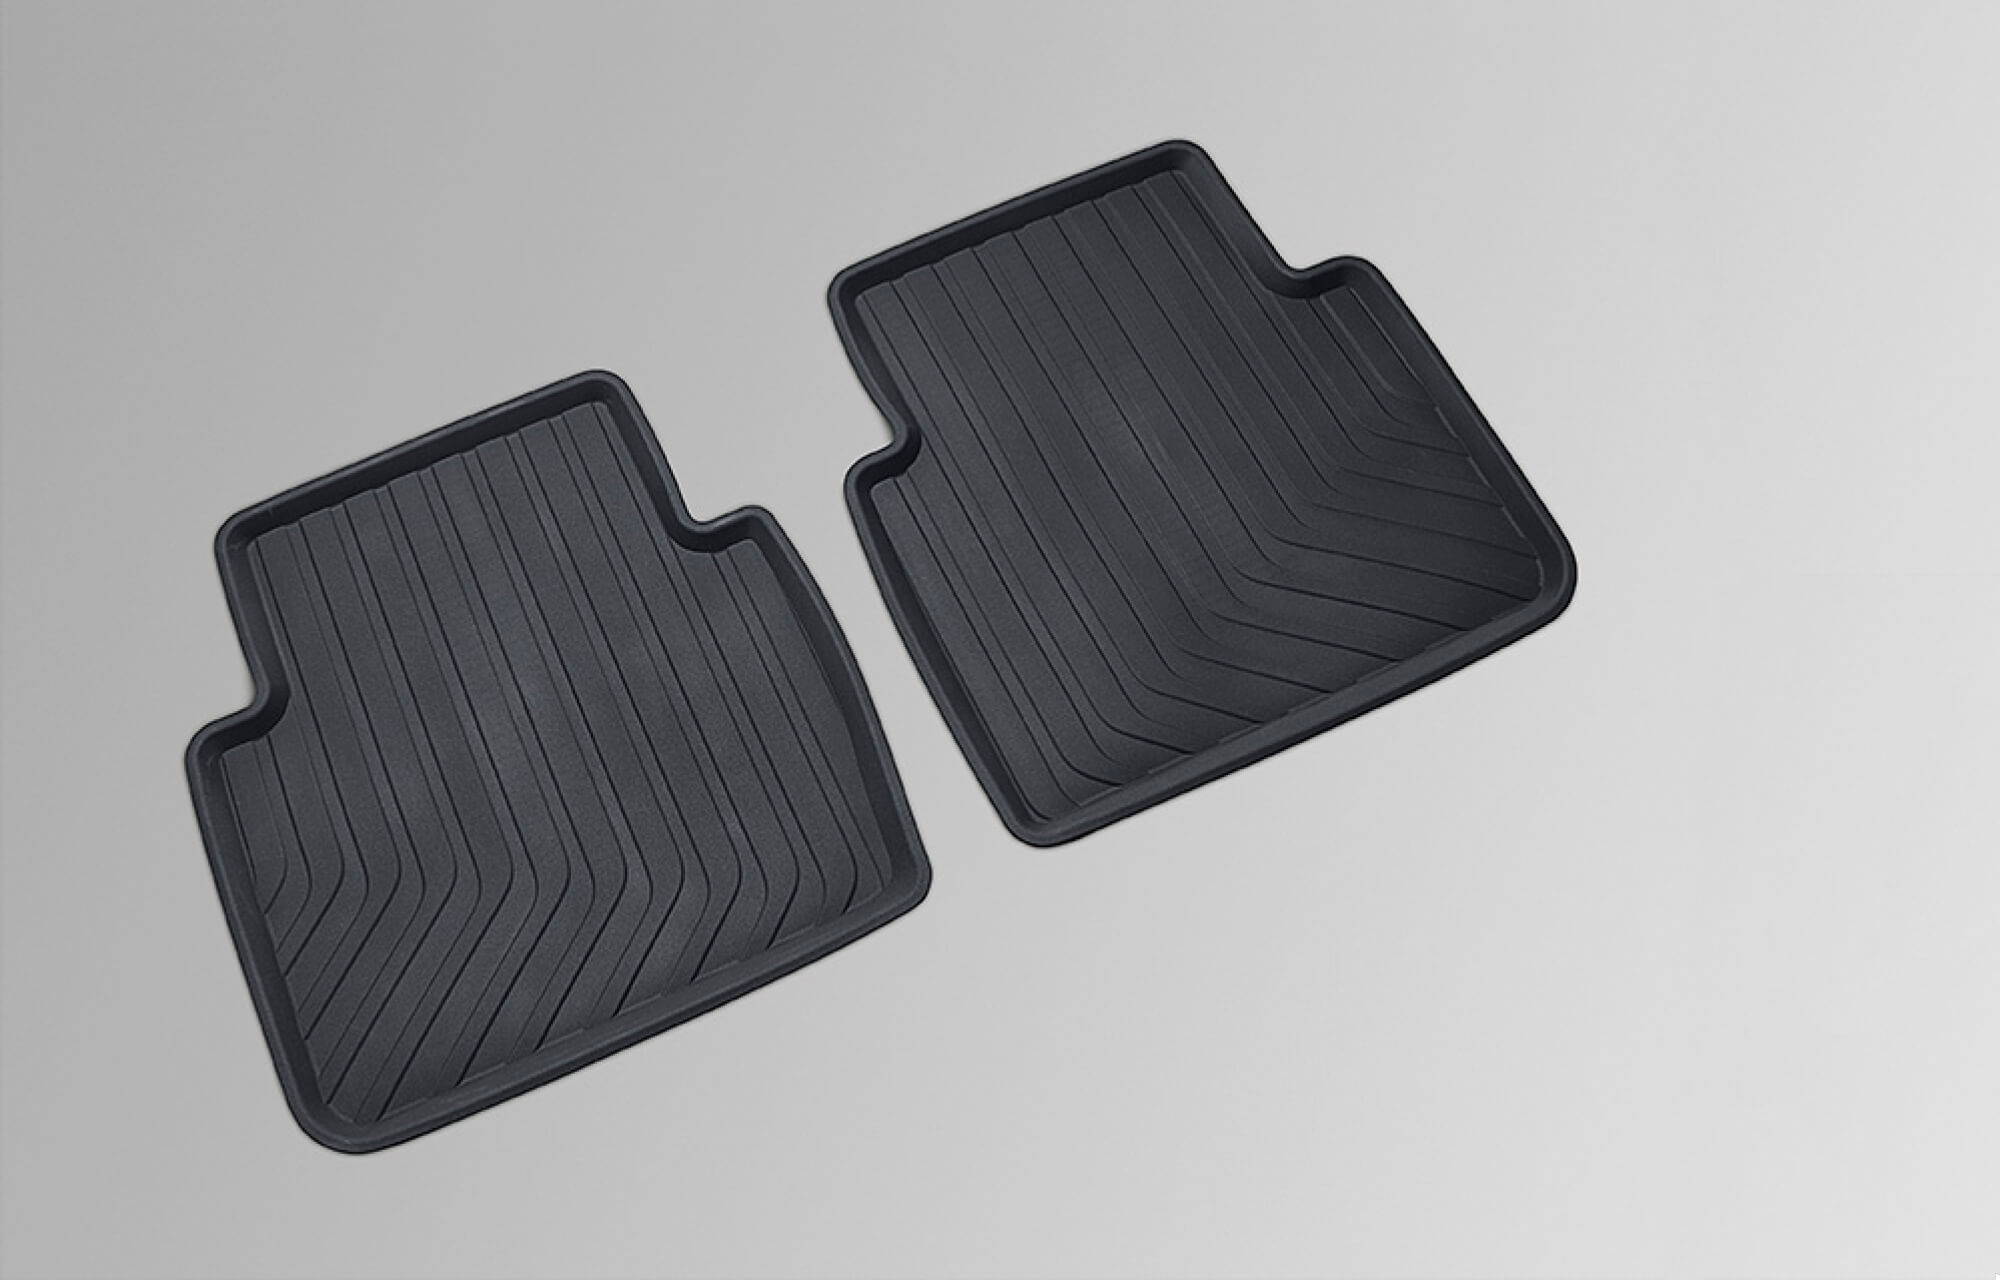 CR-V Front Lipped Rubber Mats